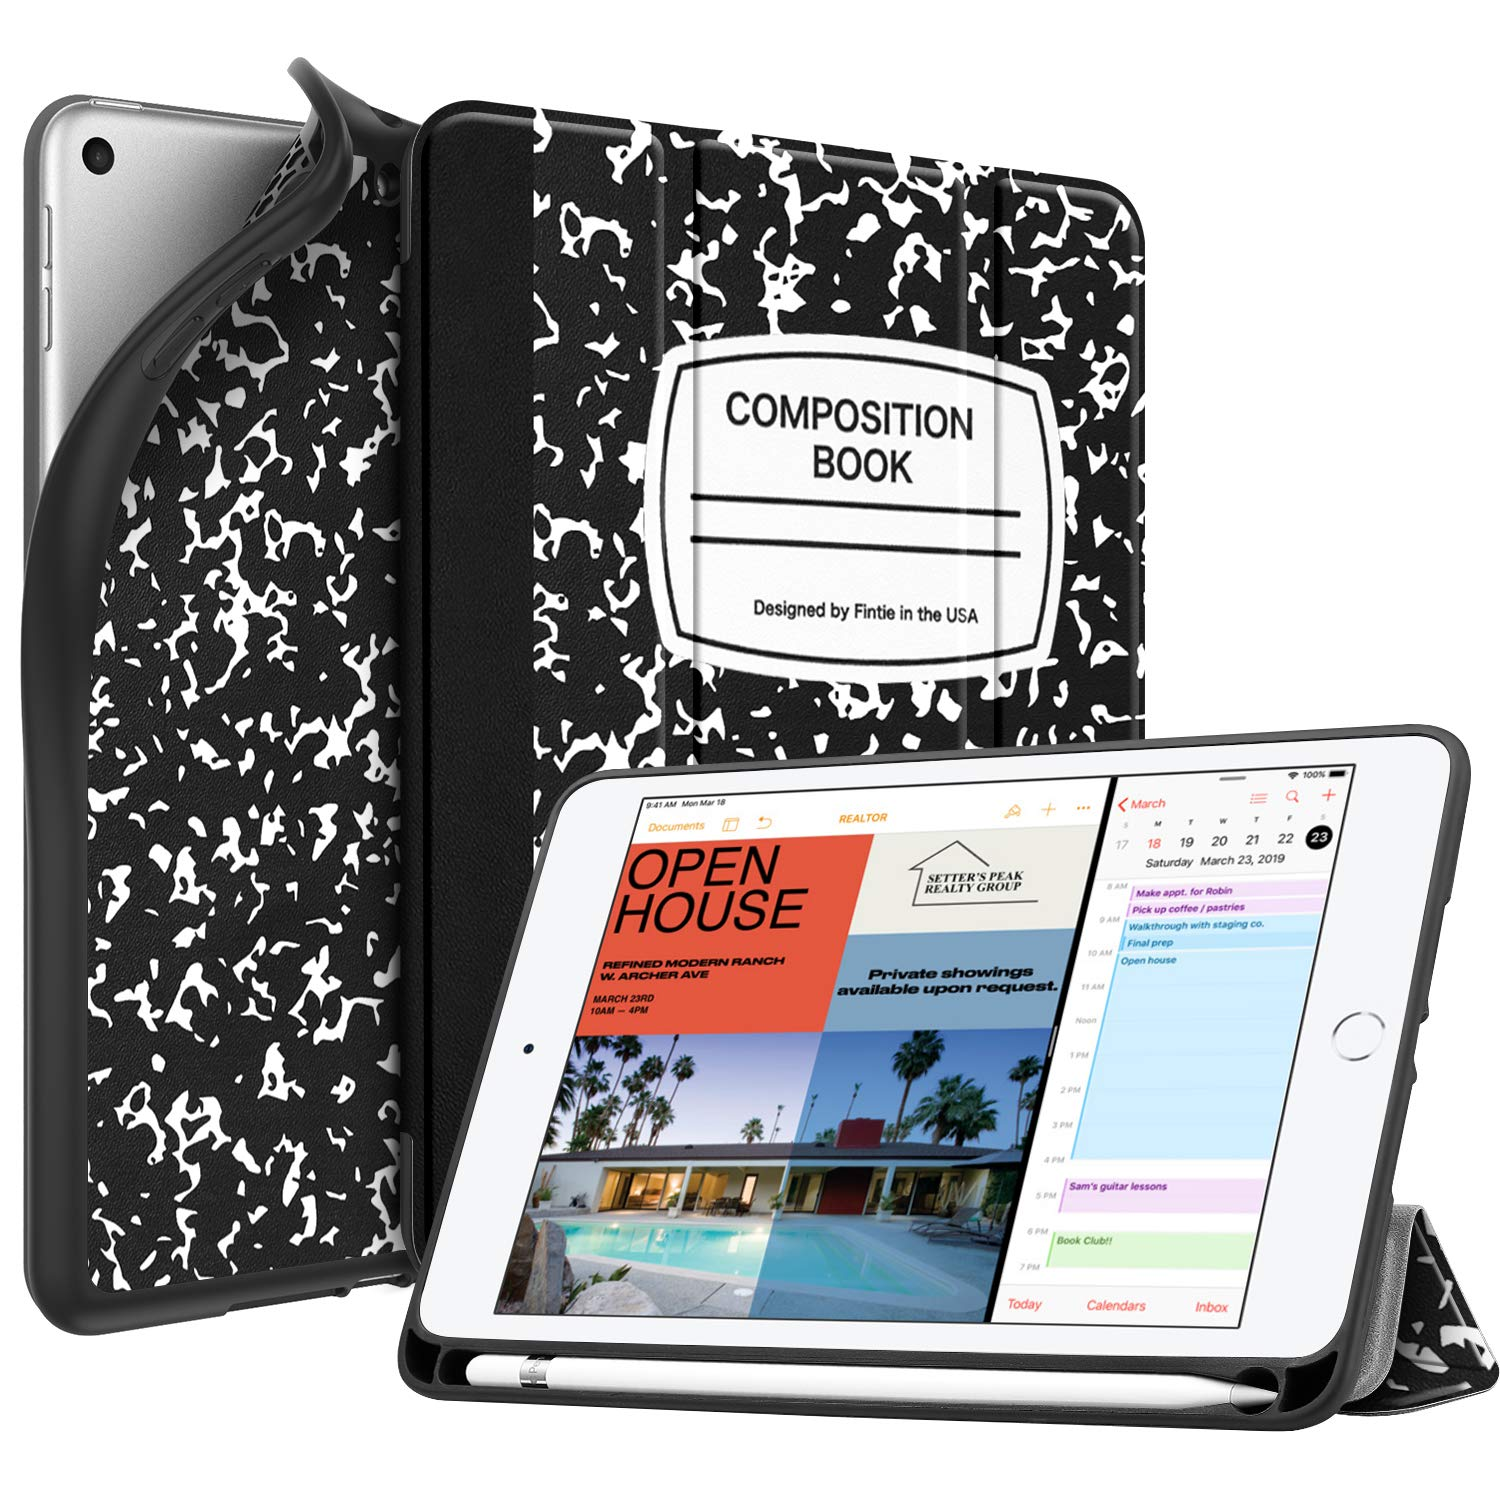 Lightweight Soft TPU Back Protective Smart Stand Cover with Auto Wake//Sleep for New iPad mini 5th Gen 2019 Black FINTIE Case with Pencil Holder for iPad mini 5 2019 - SlimShell